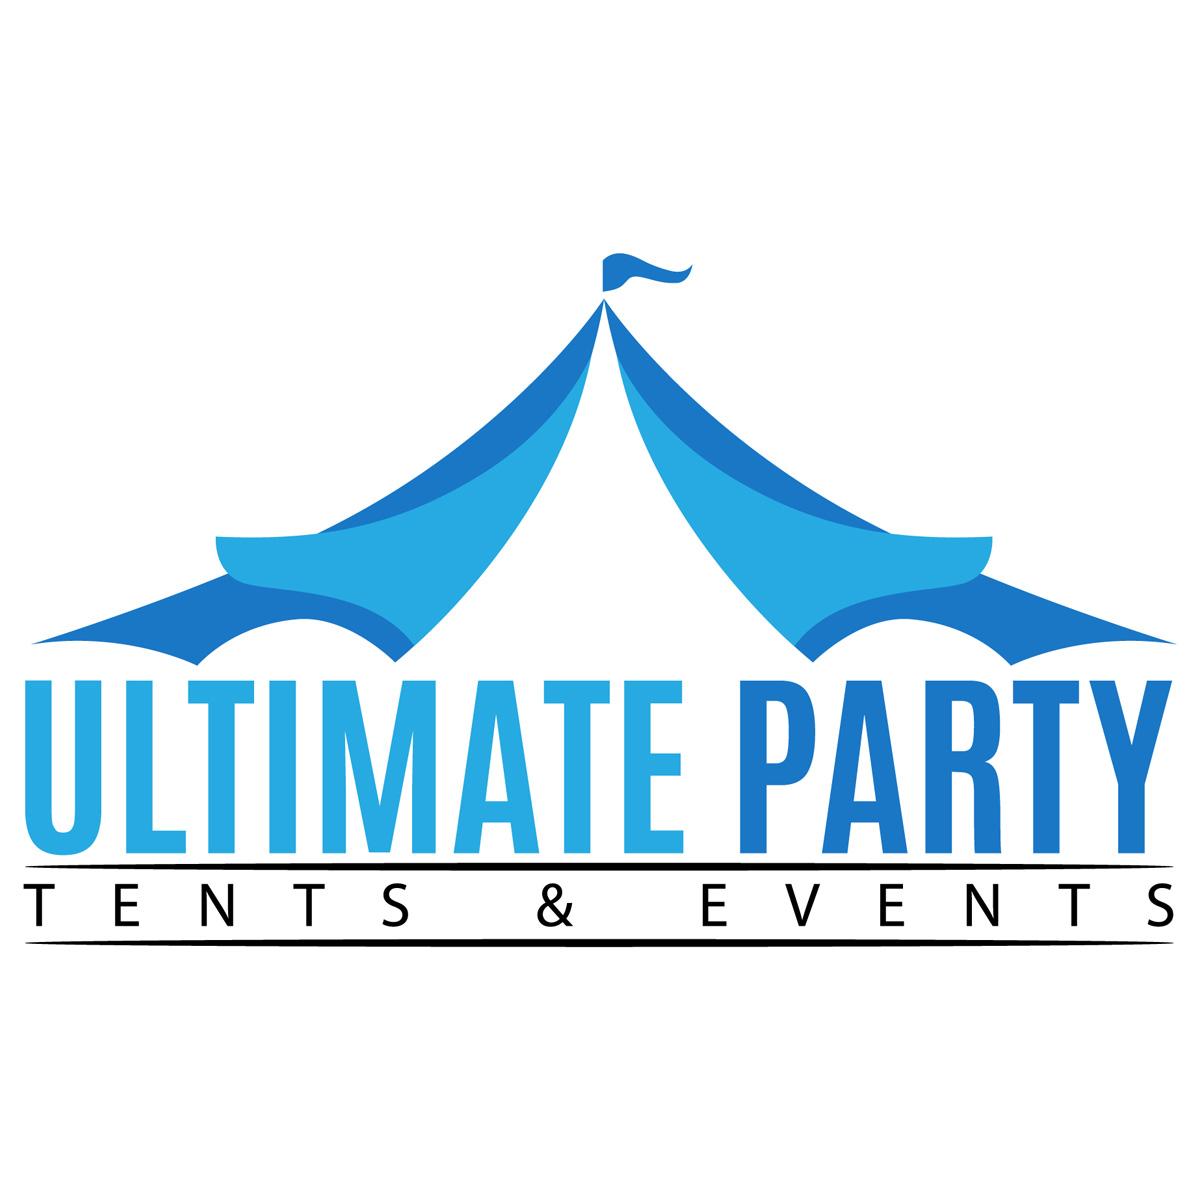 Ultimate Party Logo - JPG - Tents & Events Logo.jpg